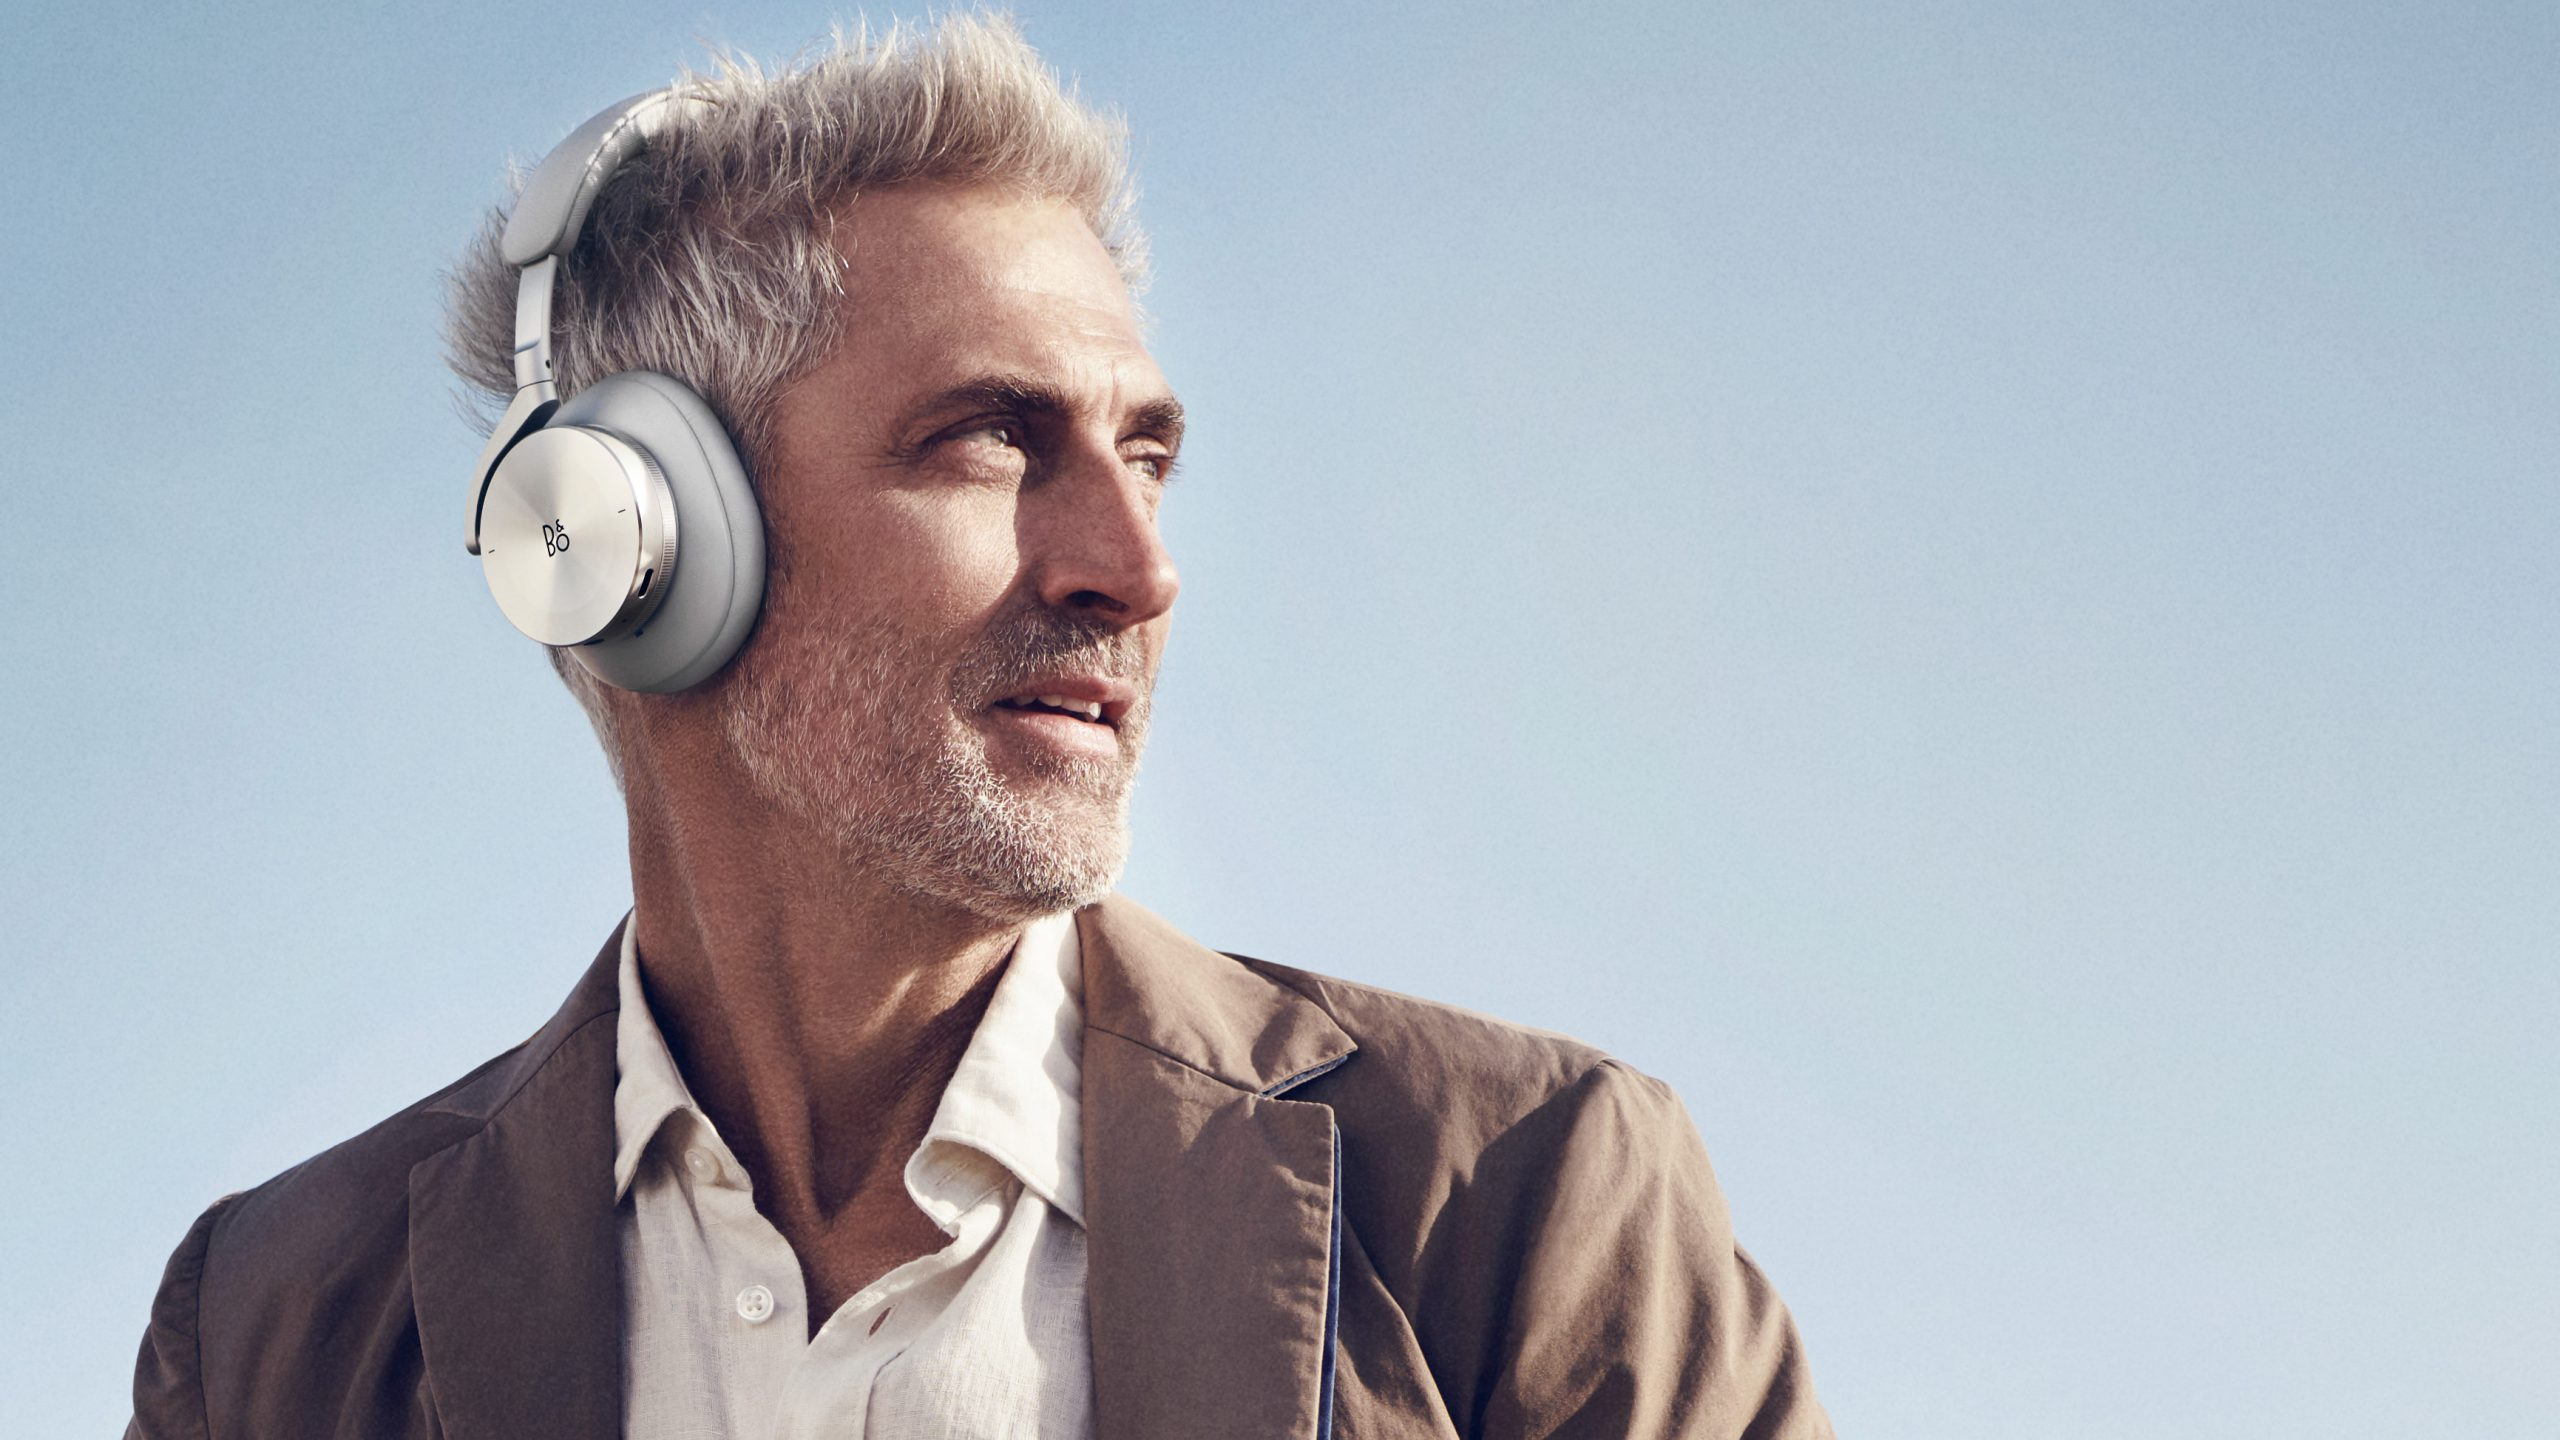 Beoplay H95 frontpage(2)